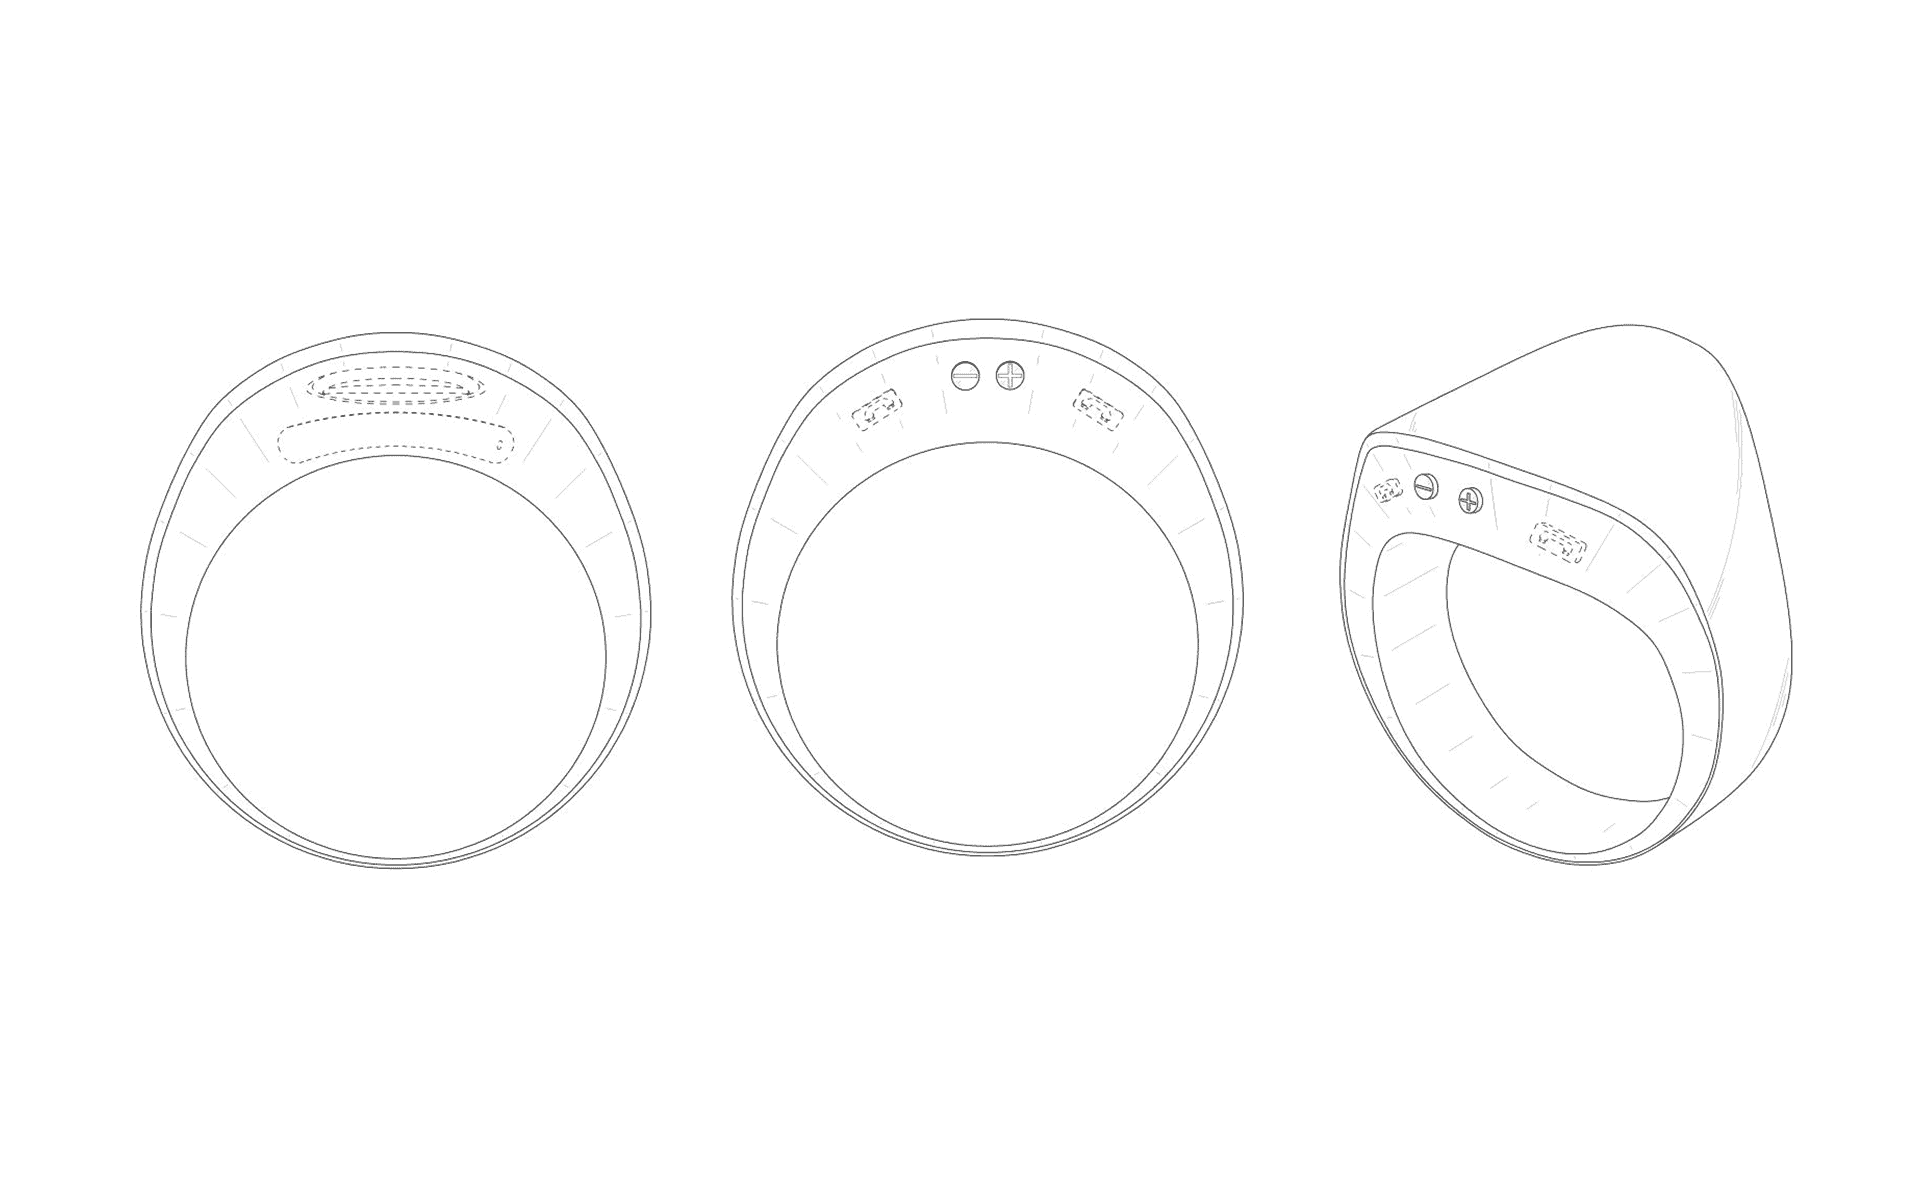 Patent Image Shows Samsung's Alleged Smart Ring